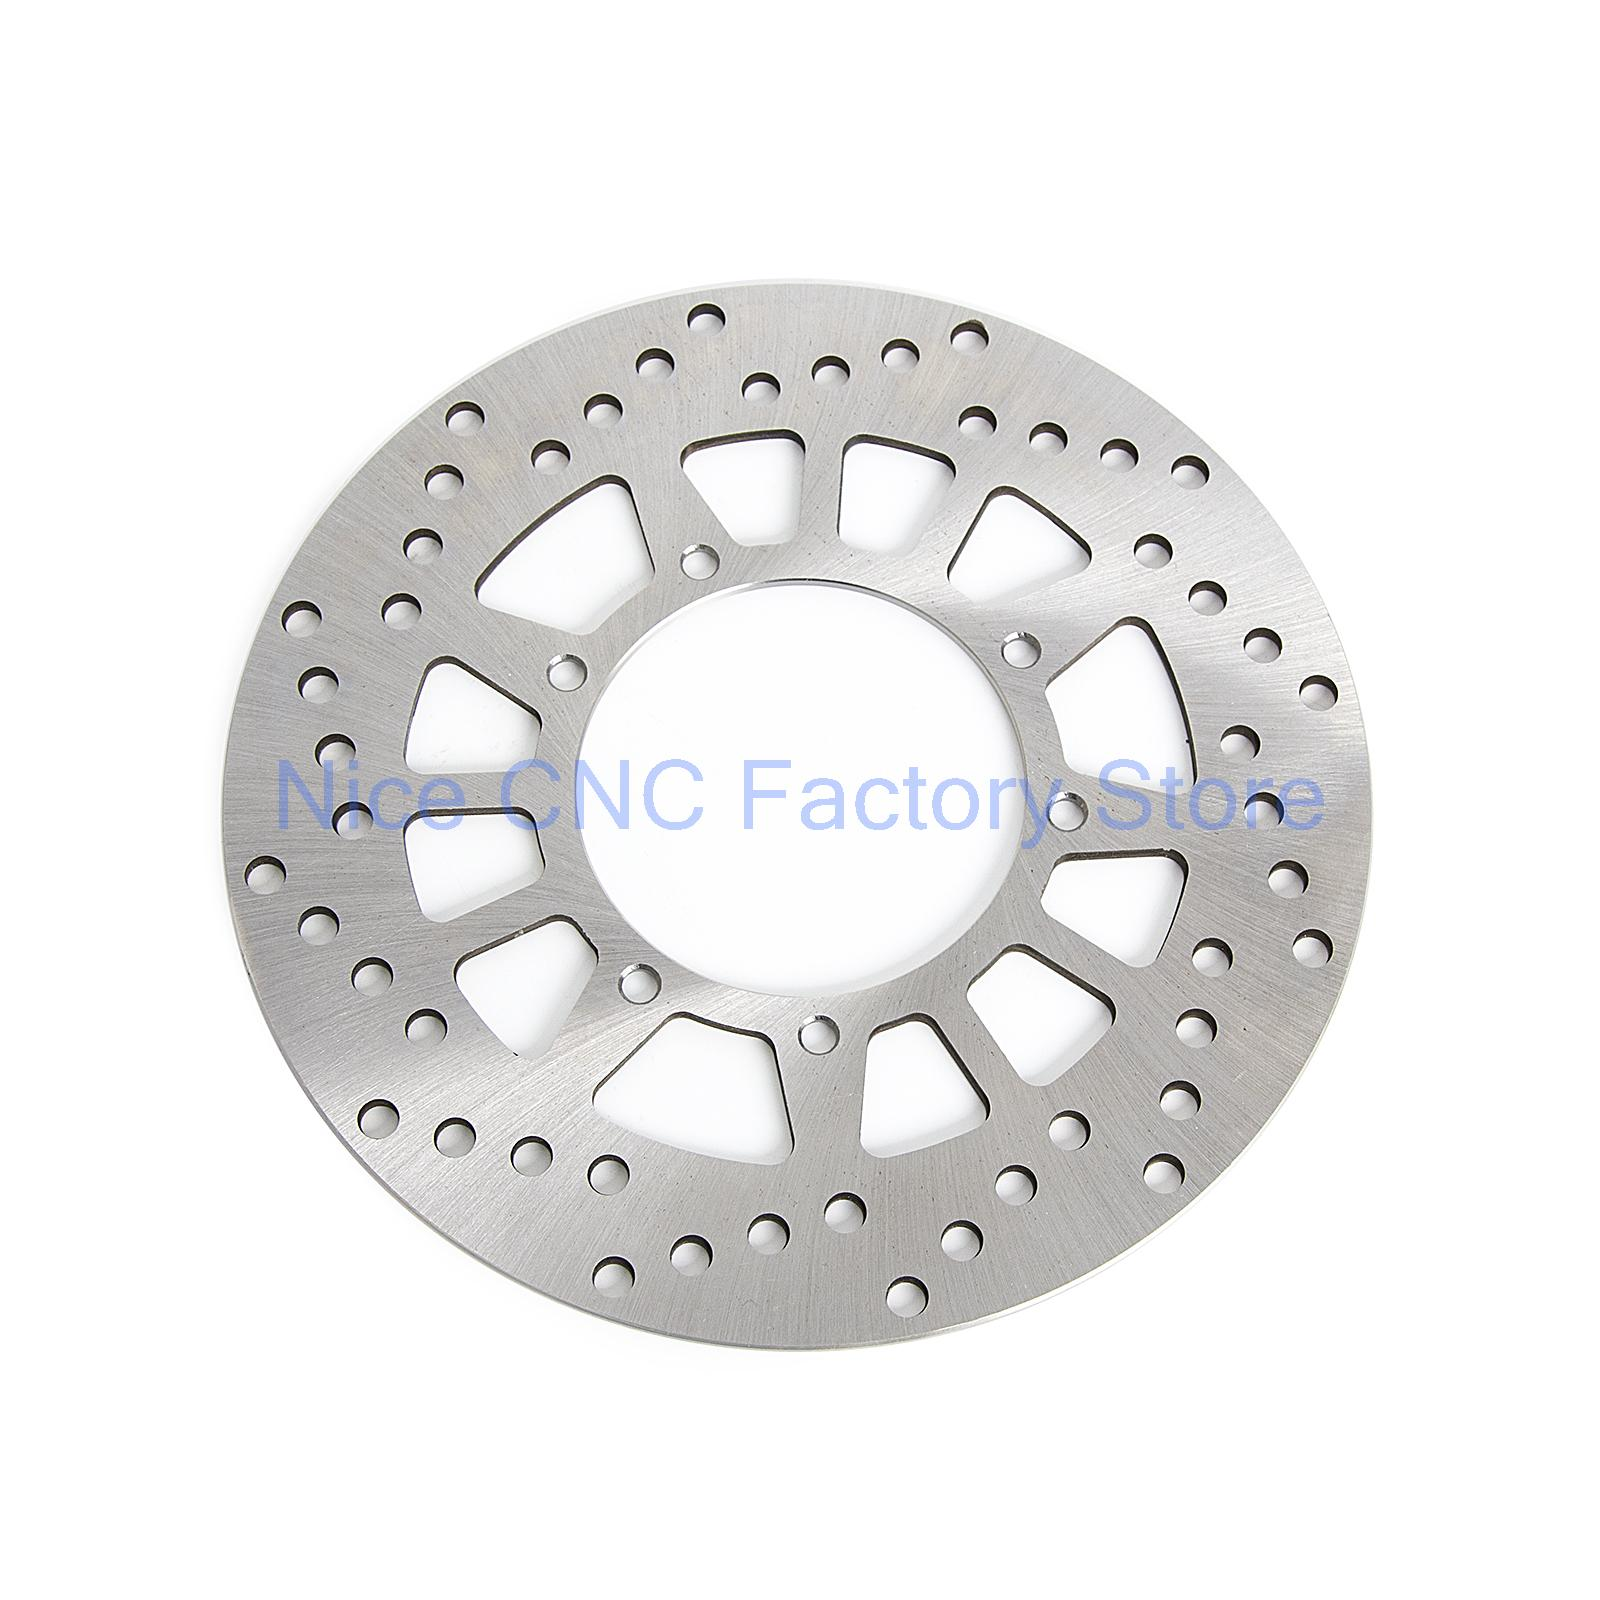 Motorcycle Front Rotor Brake Disc For Yamaha DT125 TW125 XYZ125 YZ125 YZ250 DT200 TW200 ST225 TW225 XT225 XT250 XG250 YZ490 high quality 270mm oversize front mx brake disc rotor for yamaha yz125 yz250 yz250f yz450f motorbike front mx brake disc